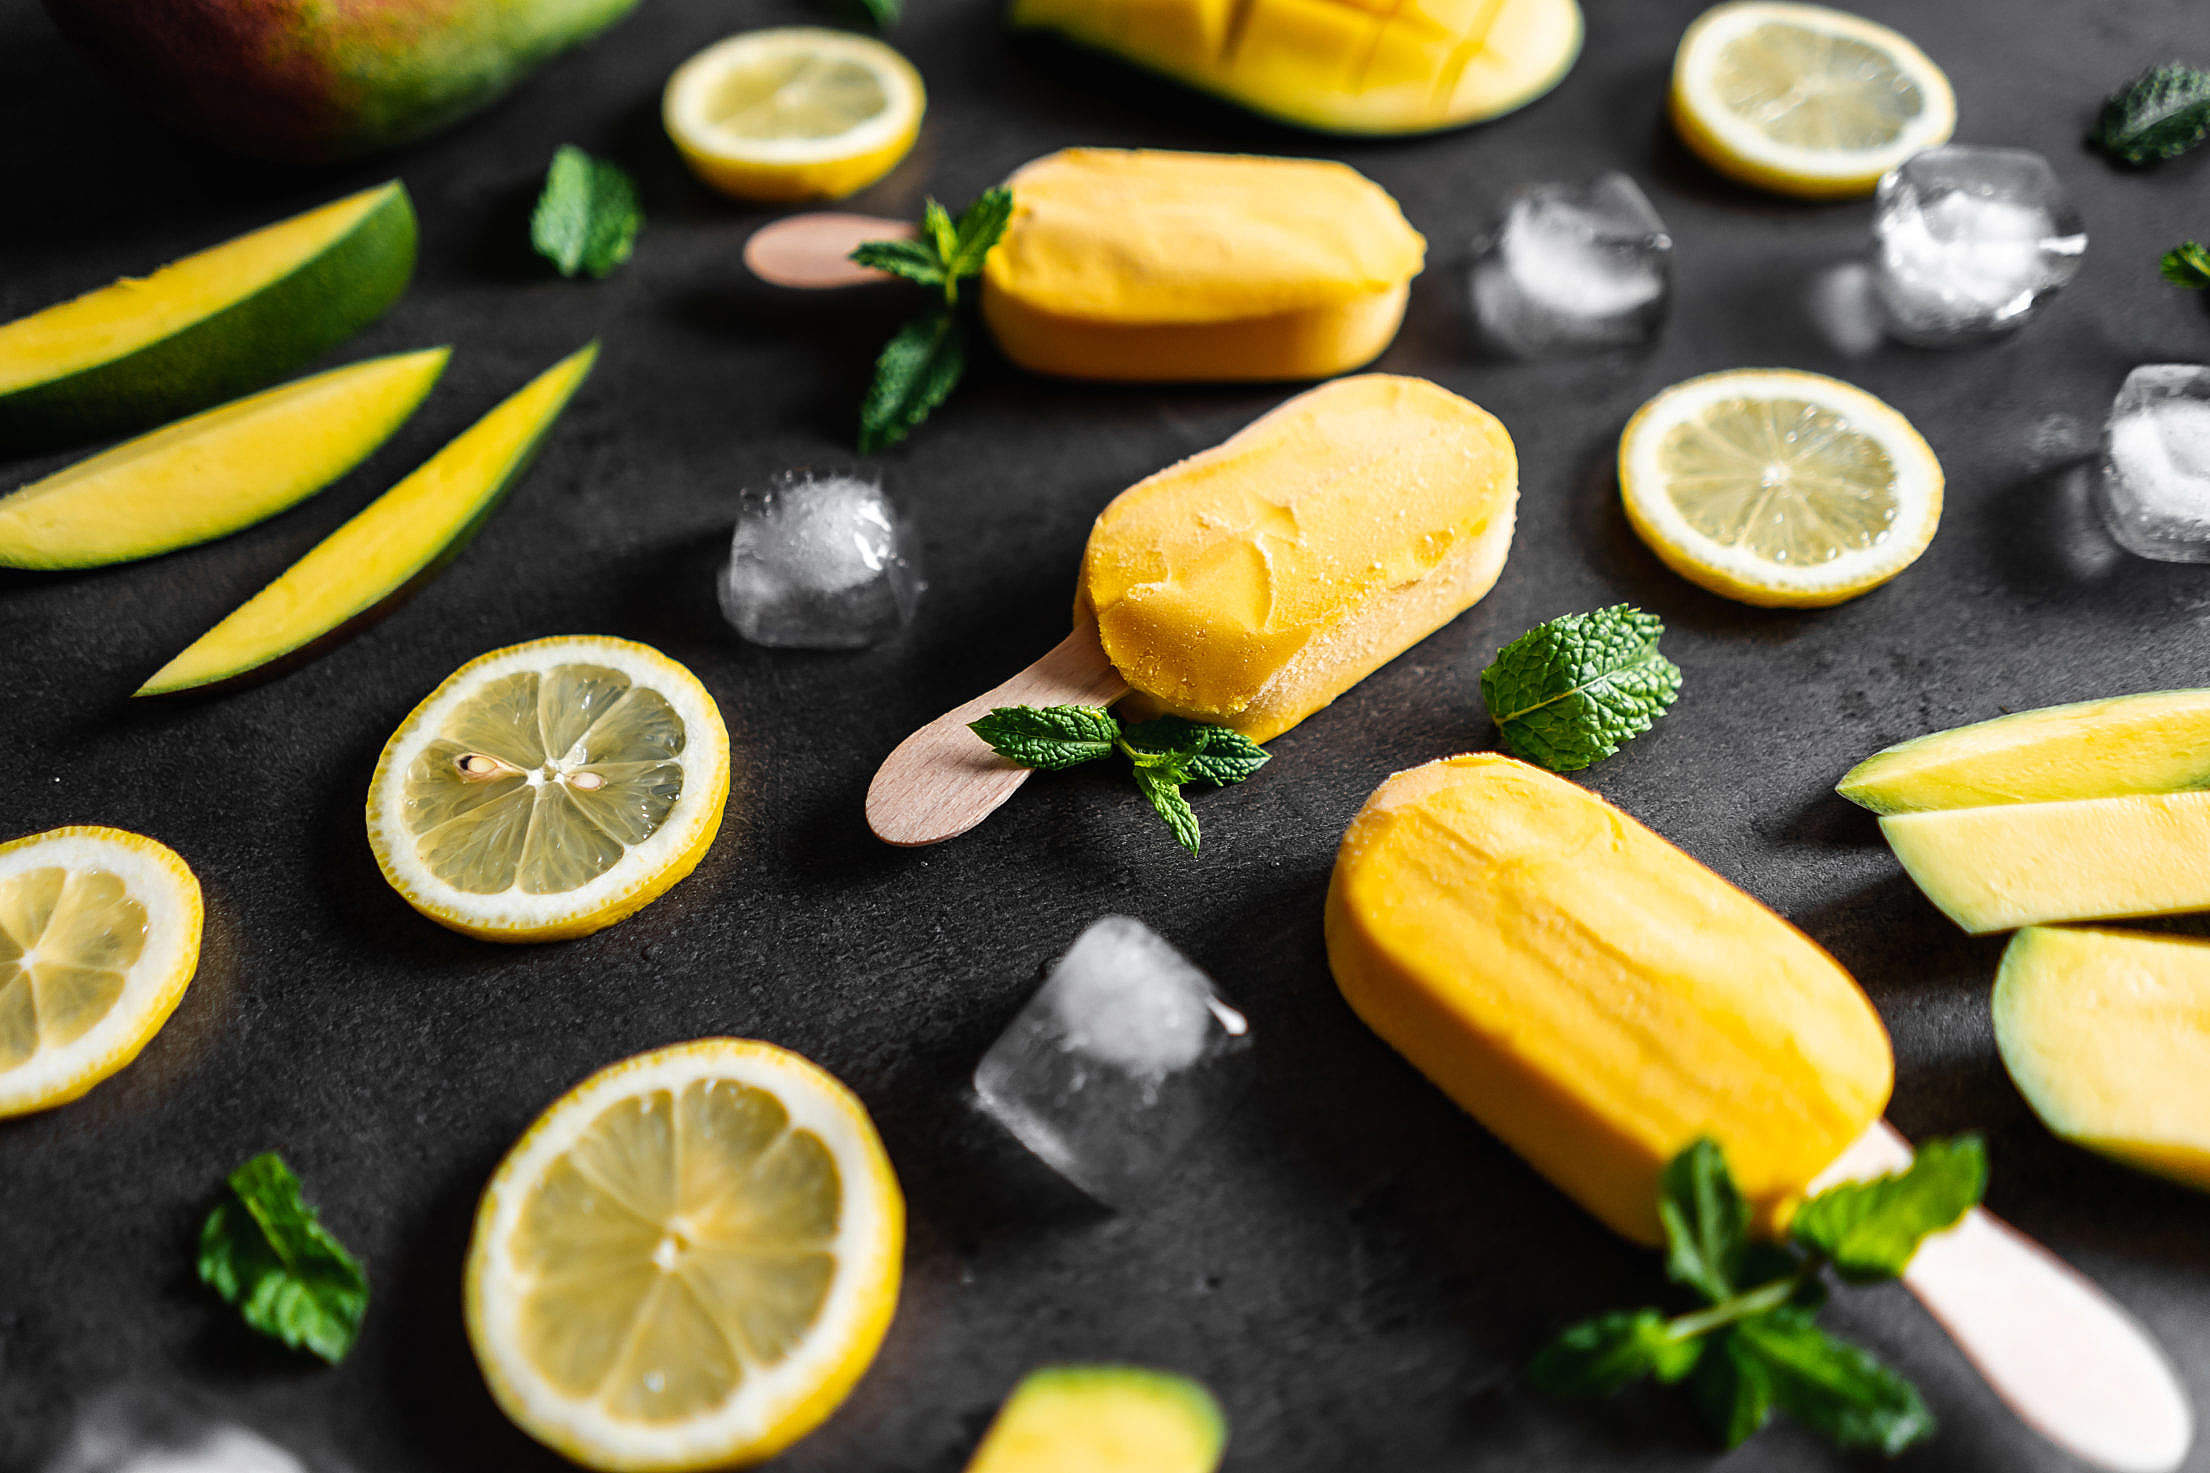 Homemade Mango Popsicles Decorated with Mint Leaves Free Stock Photo